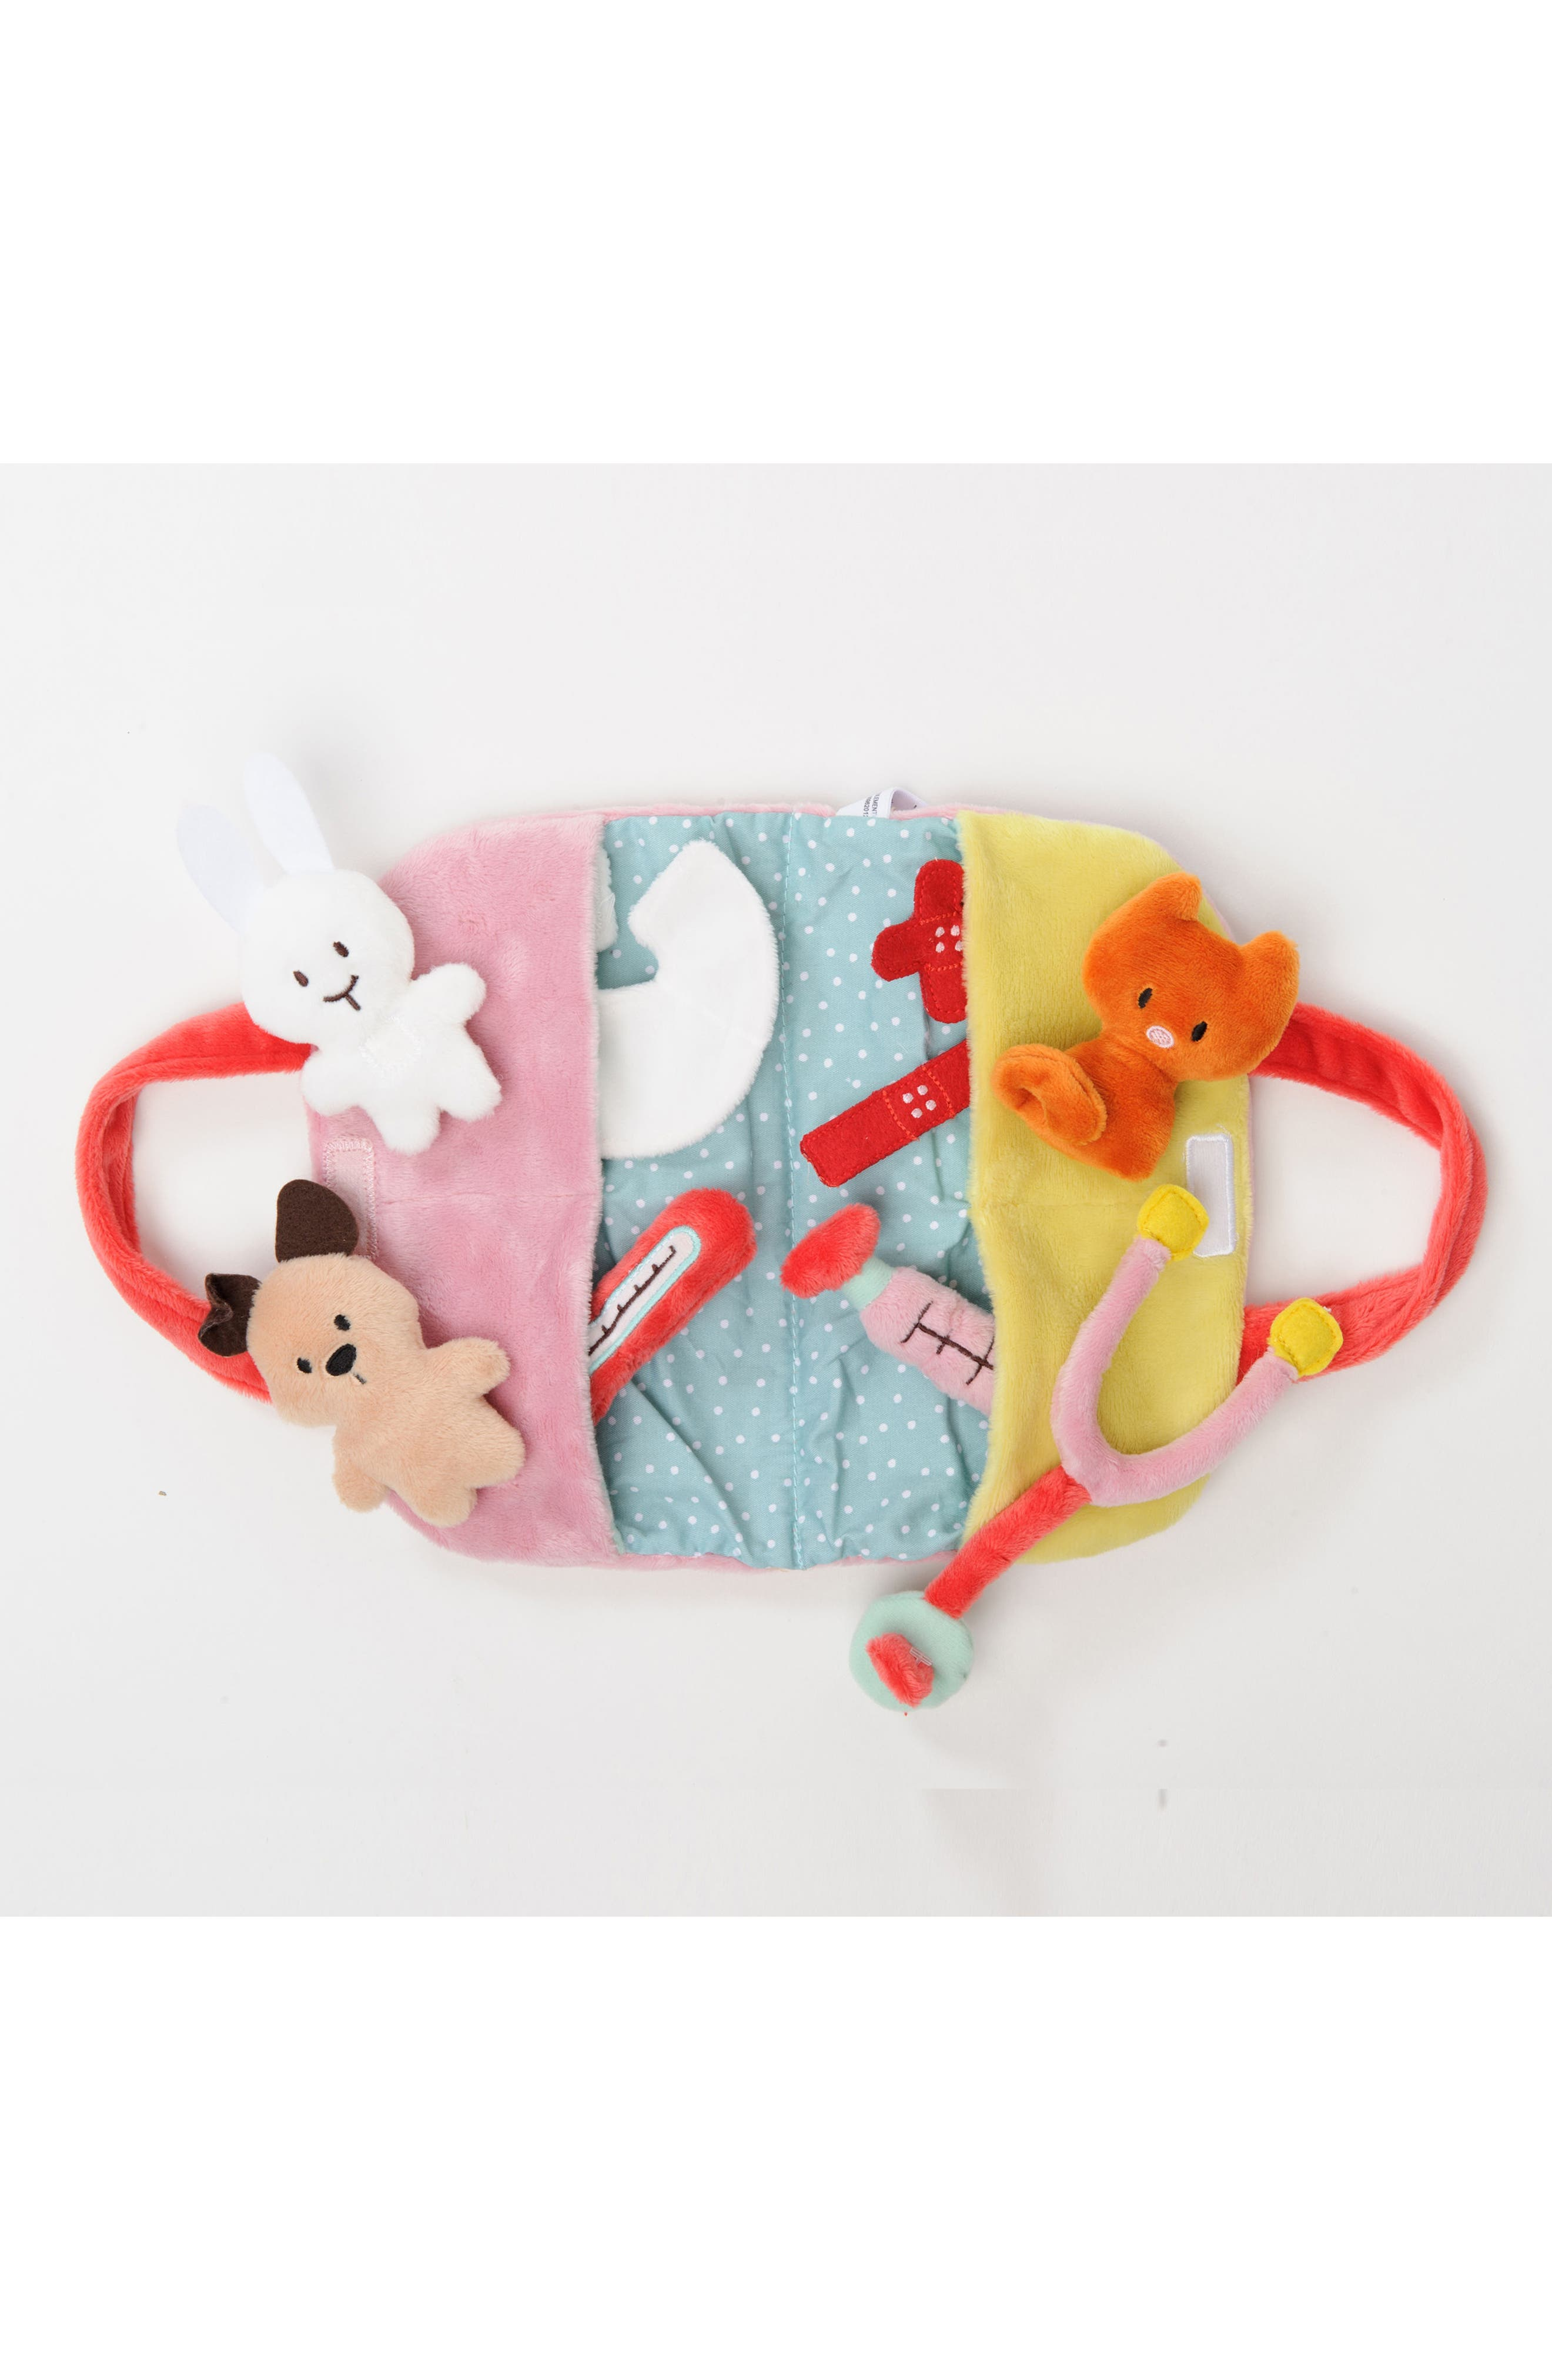 Neat Oh! 11-Piece Nici<sup>®</sup> Wonderland Minilina Plush Veterinarian Play Set,                             Alternate thumbnail 2, color,                             650